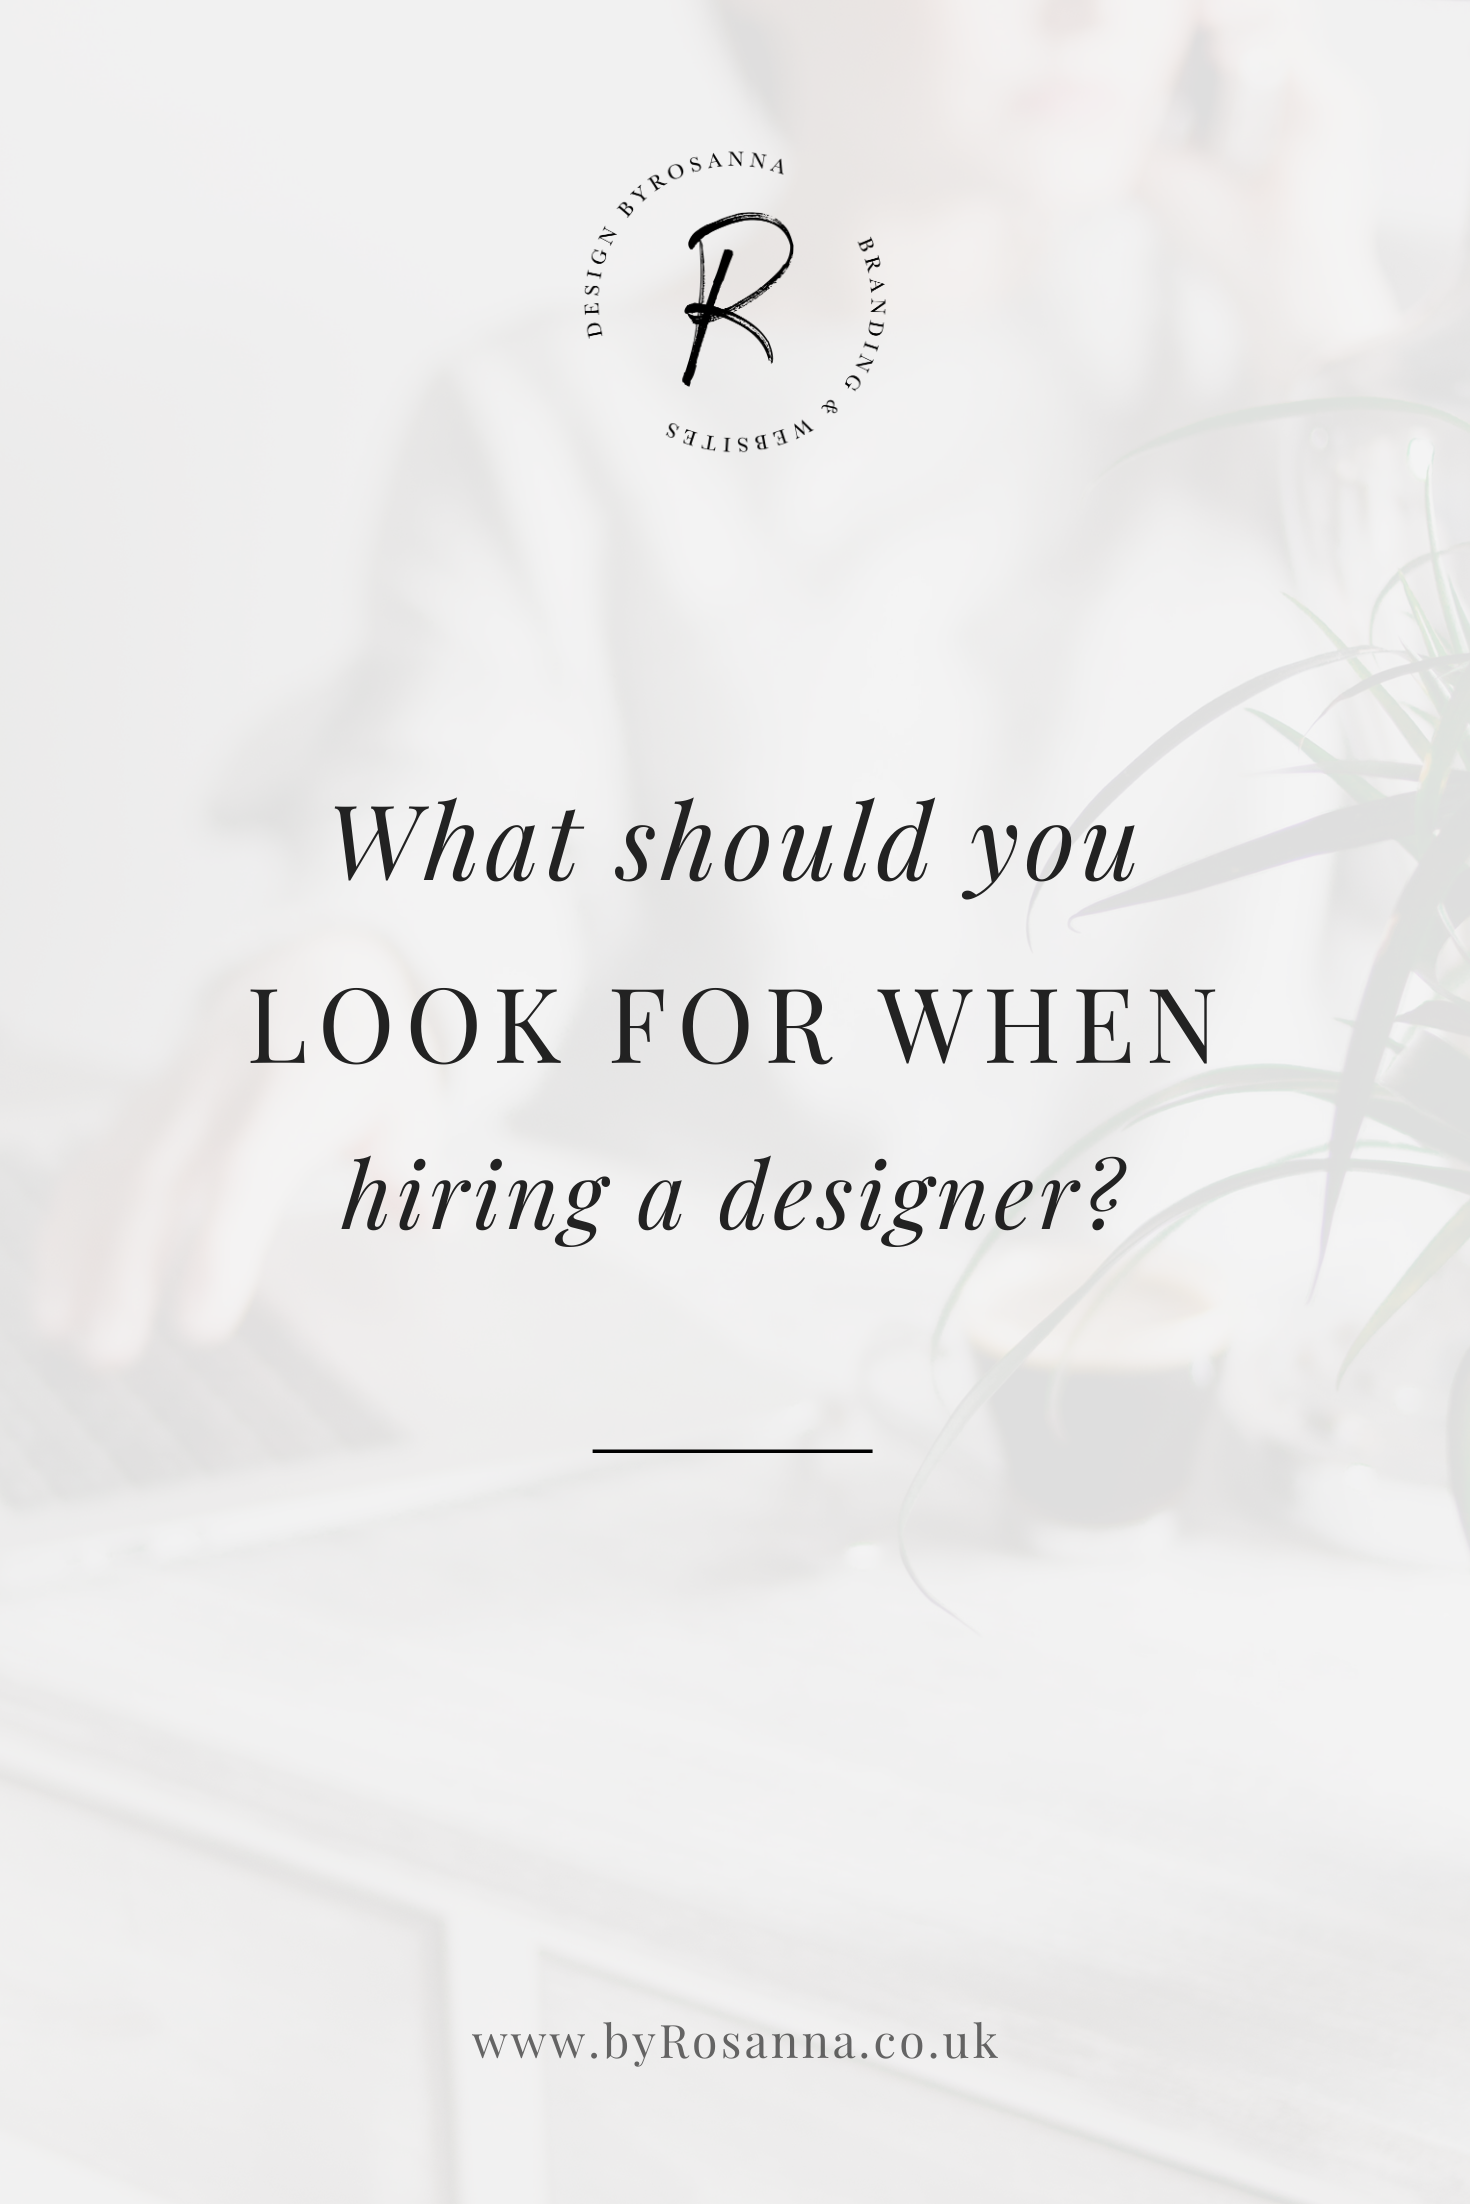 What Should You Look For When Hiring a Designer?   byRosanna   #hiringadesigner #designer #websitedesigner